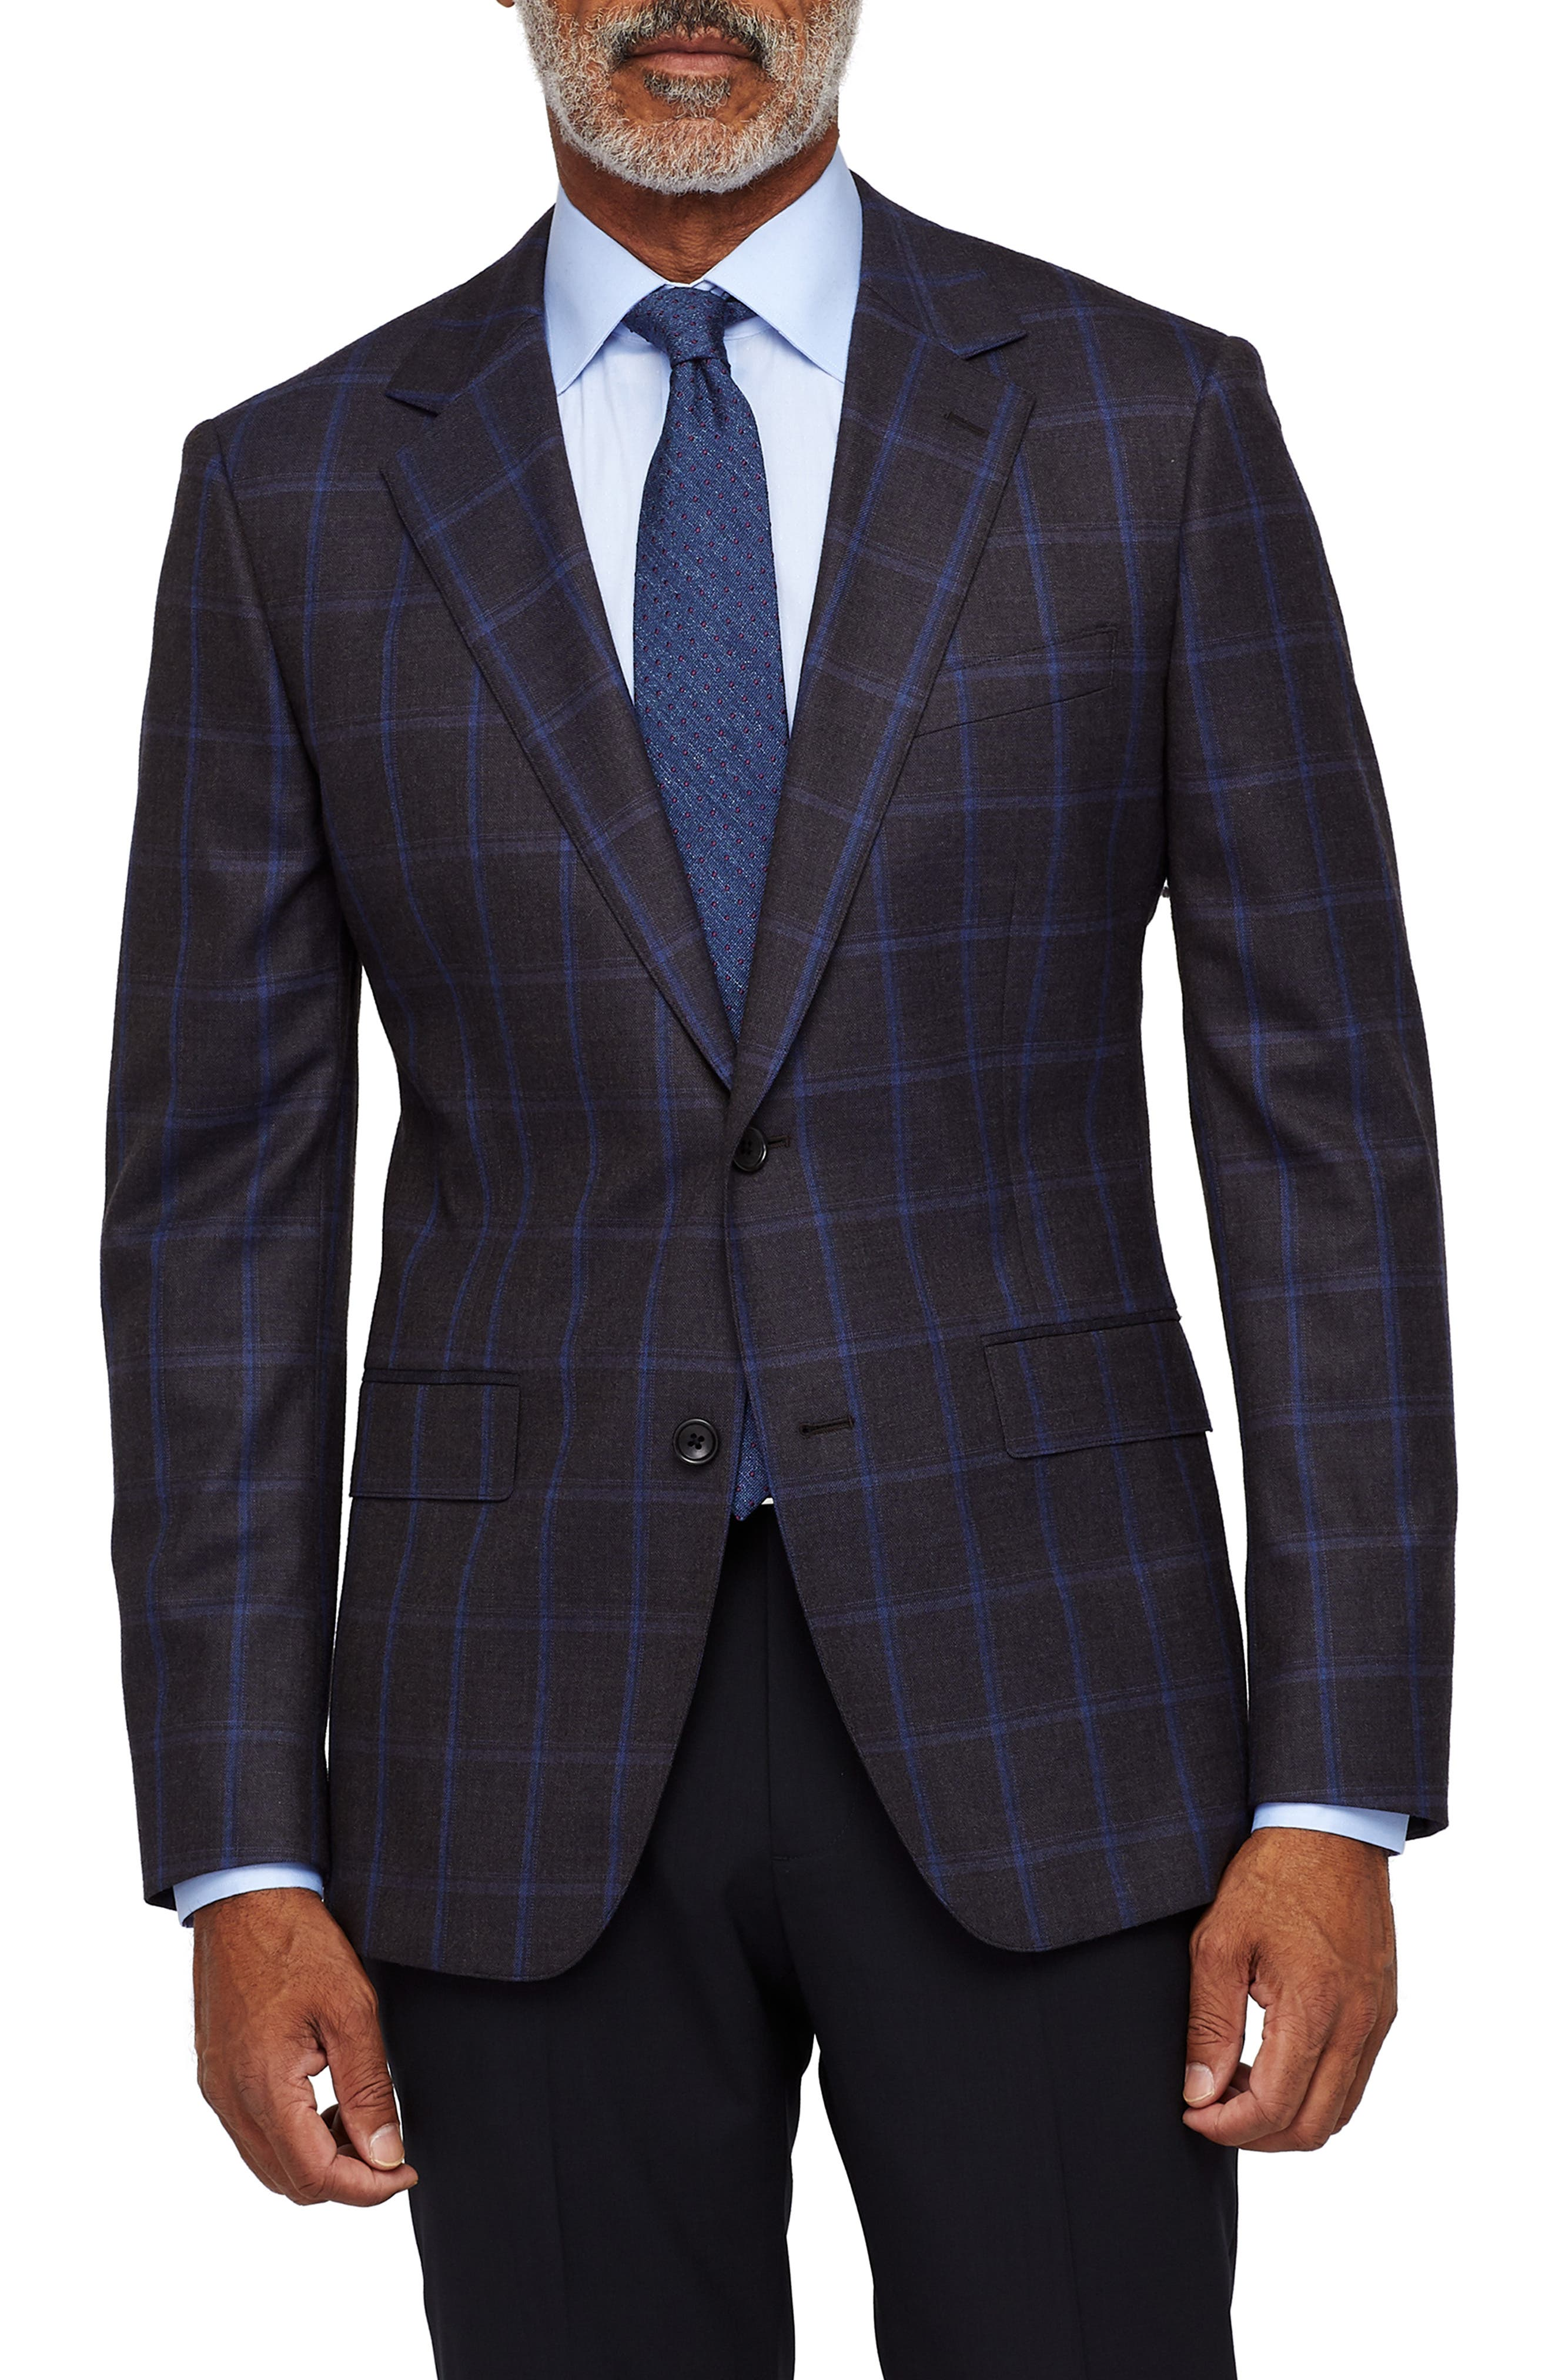 Jetsetter Stretch Wool Blazer,                             Main thumbnail 1, color,                             BLUE AND SLATE WINDOWPANE